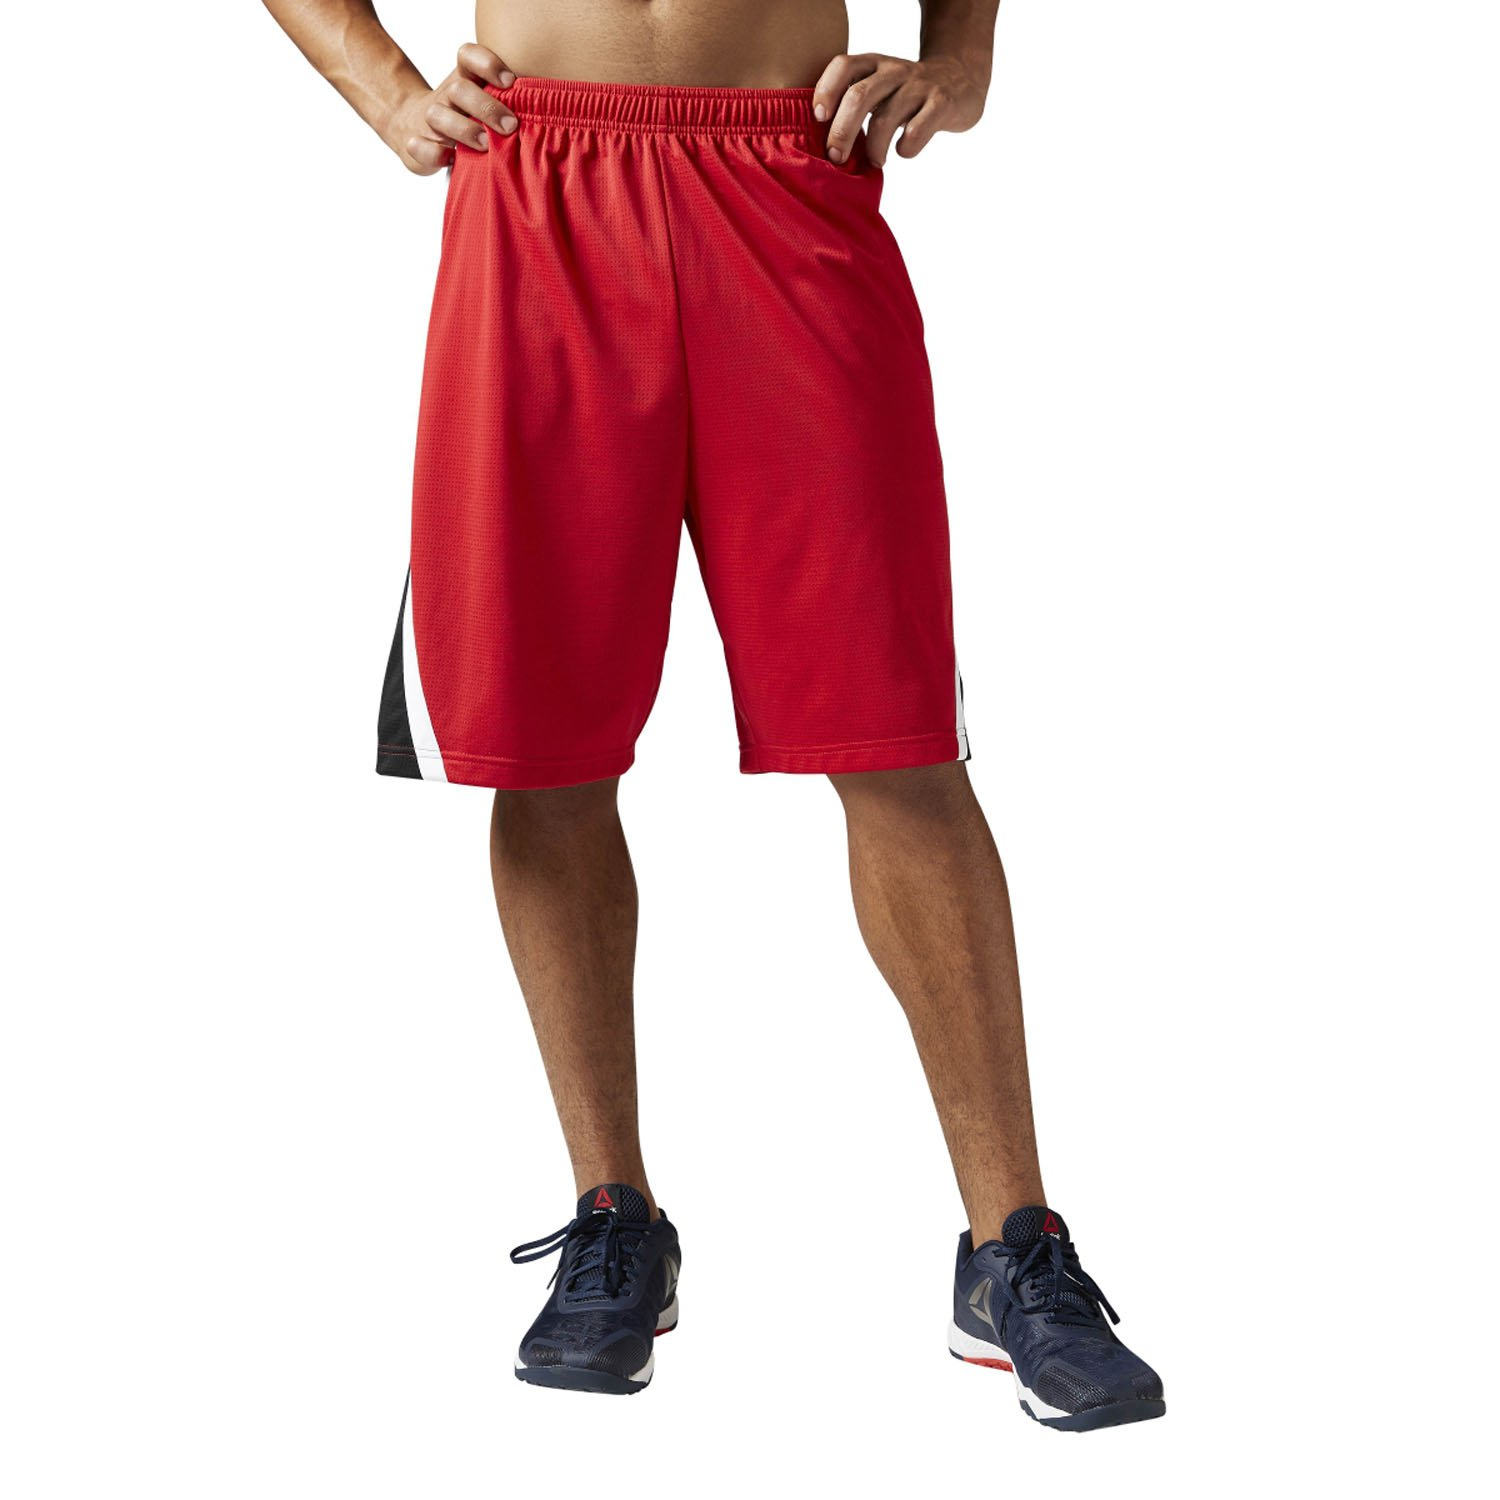 Sobrevivir mostrar revolución  Buy Reebok Men's Basketball Shorts, Red, X-Large Online at Low Prices in  India - Amazon.in